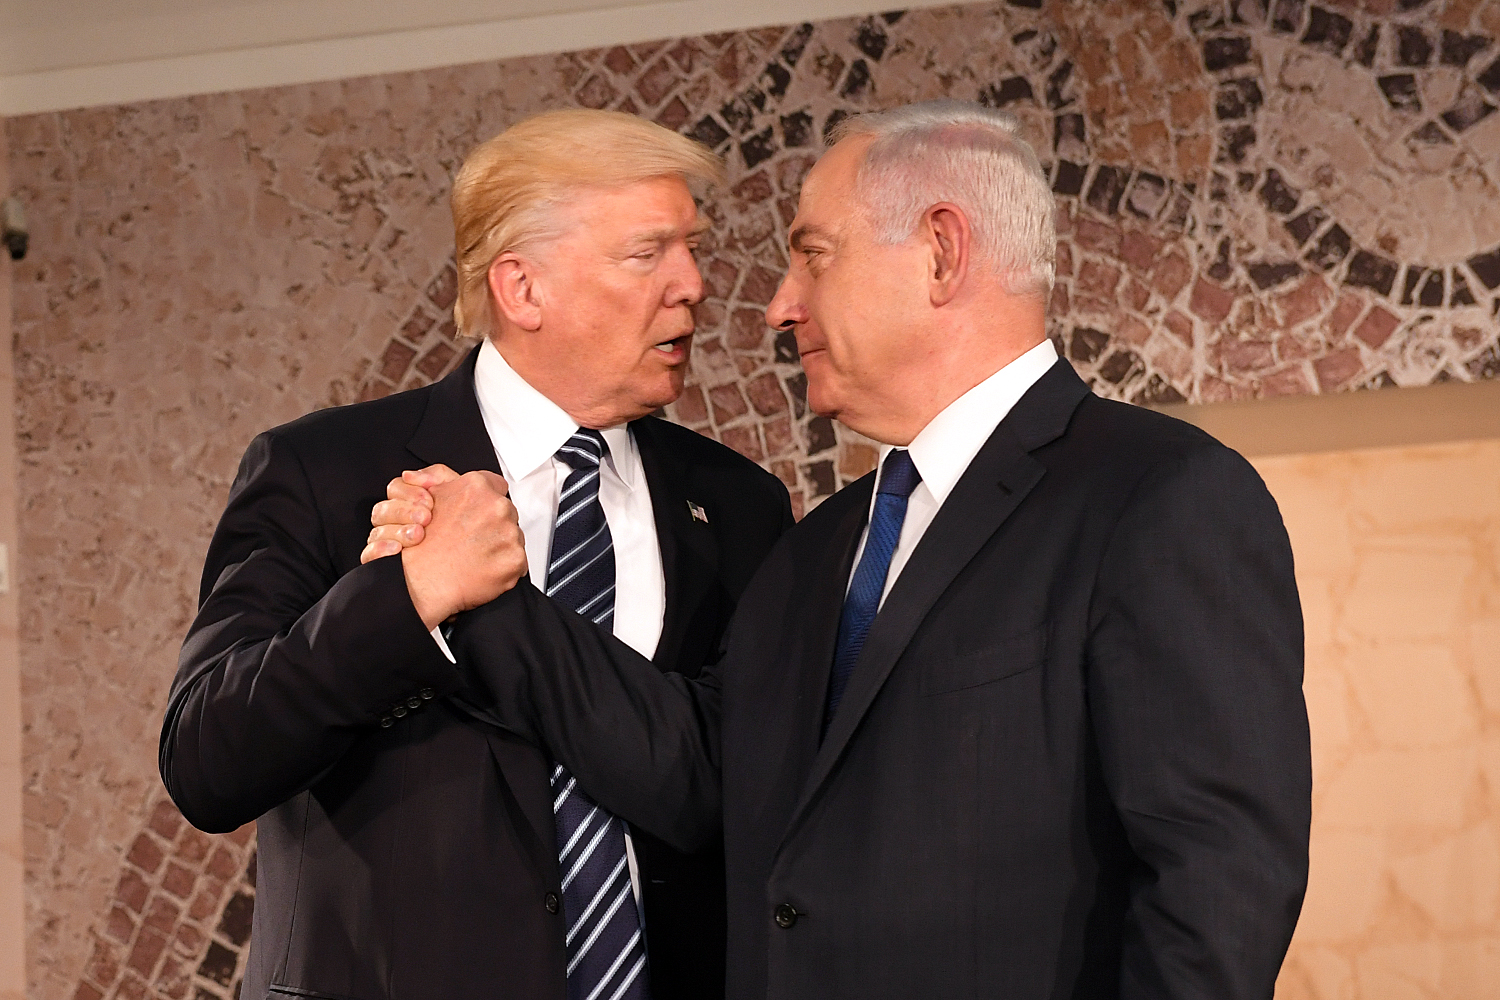 President Trump at the Israel Museum, Jerusalem, May 23, 2017. (U.S. Embassy Tel Aviv)